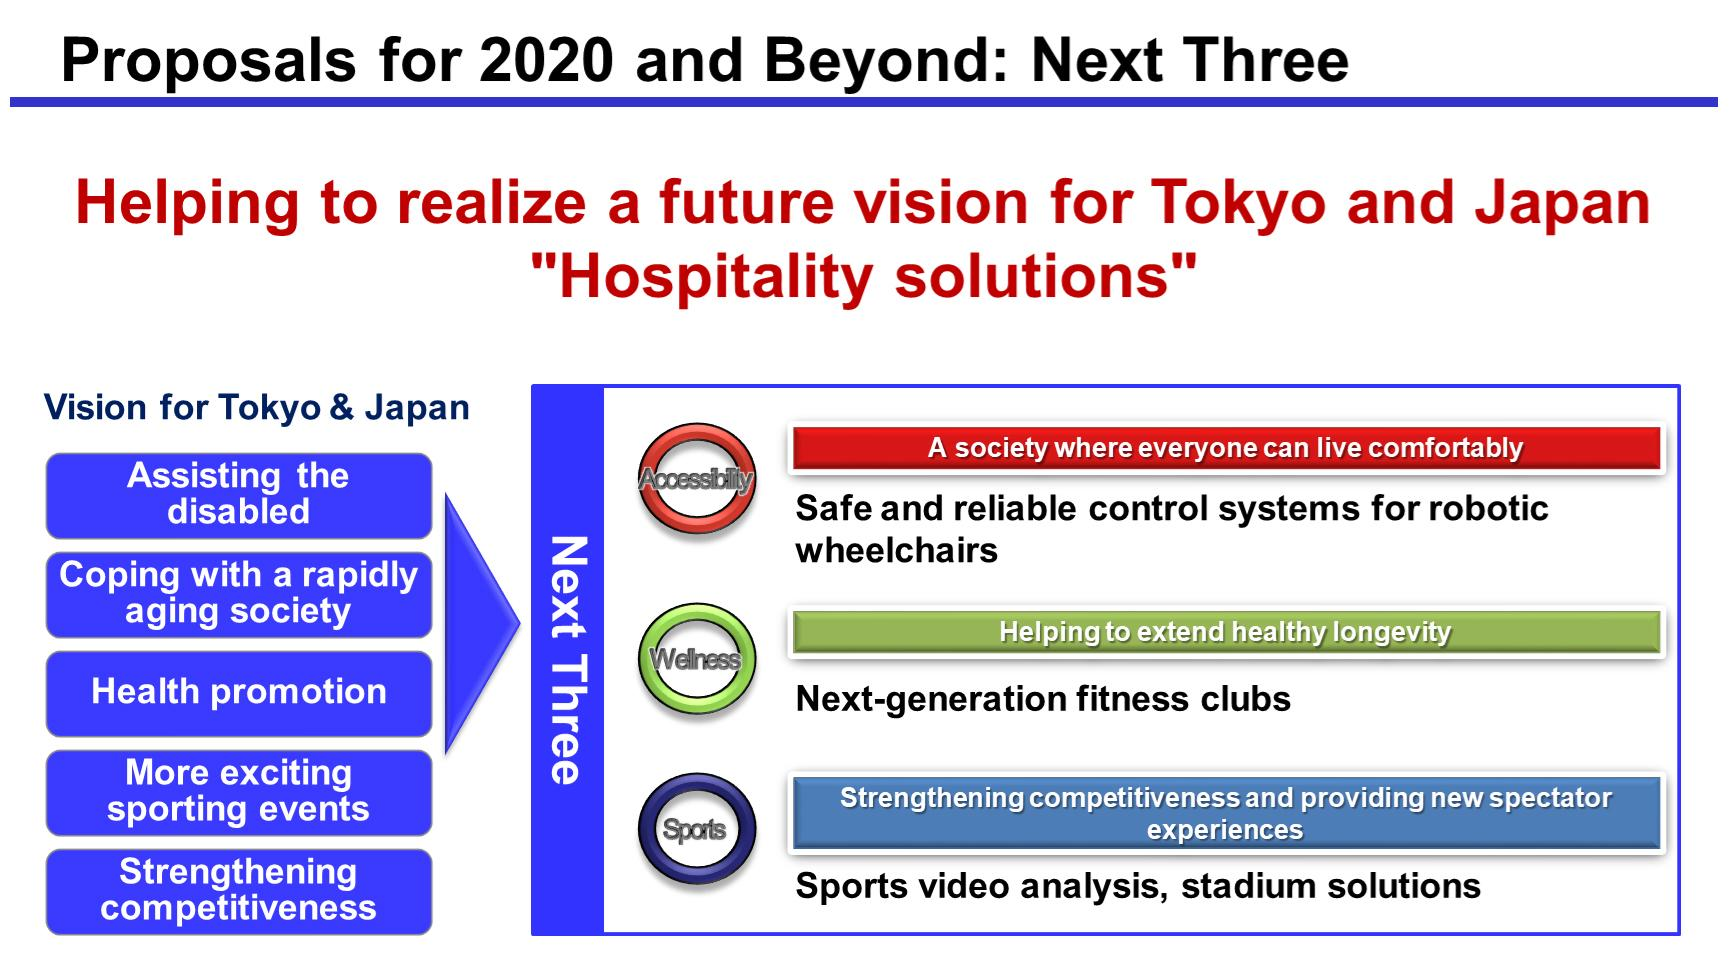 image: Proposals for 2020 and Beyond: Next Three